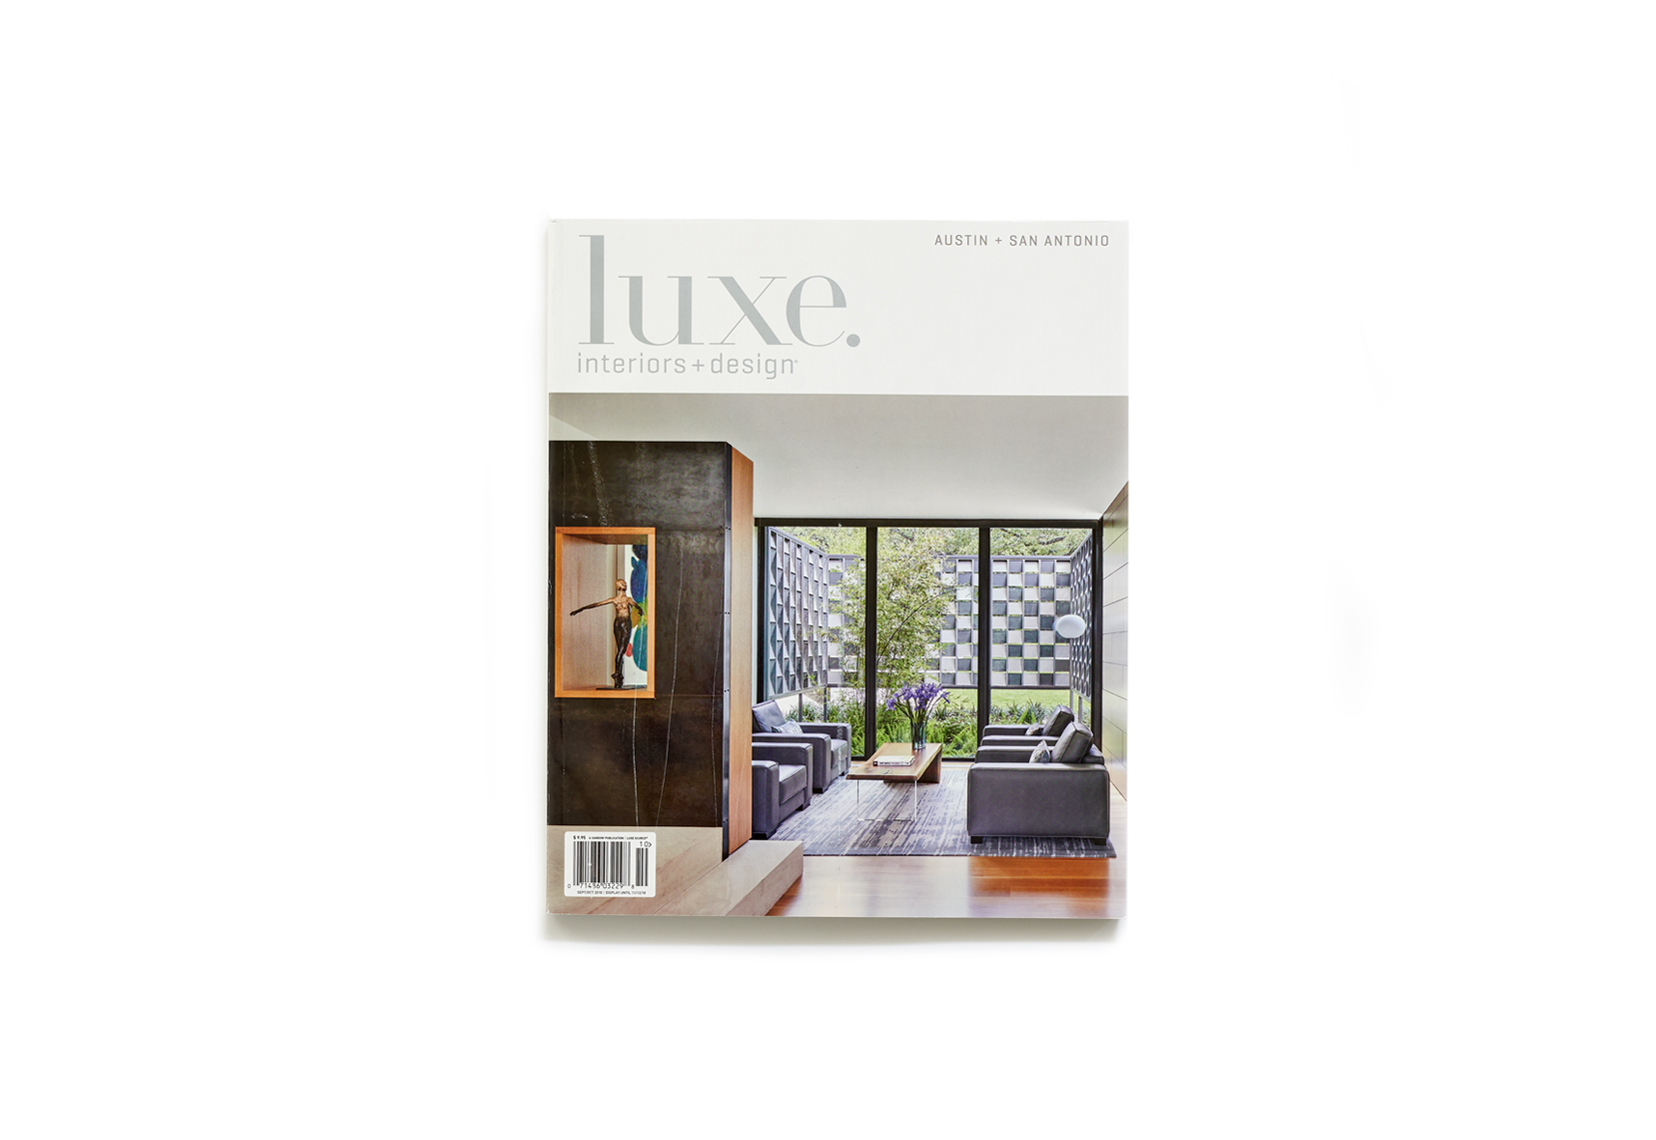 dror baldinger faia architectural photography luxe interiors design cover